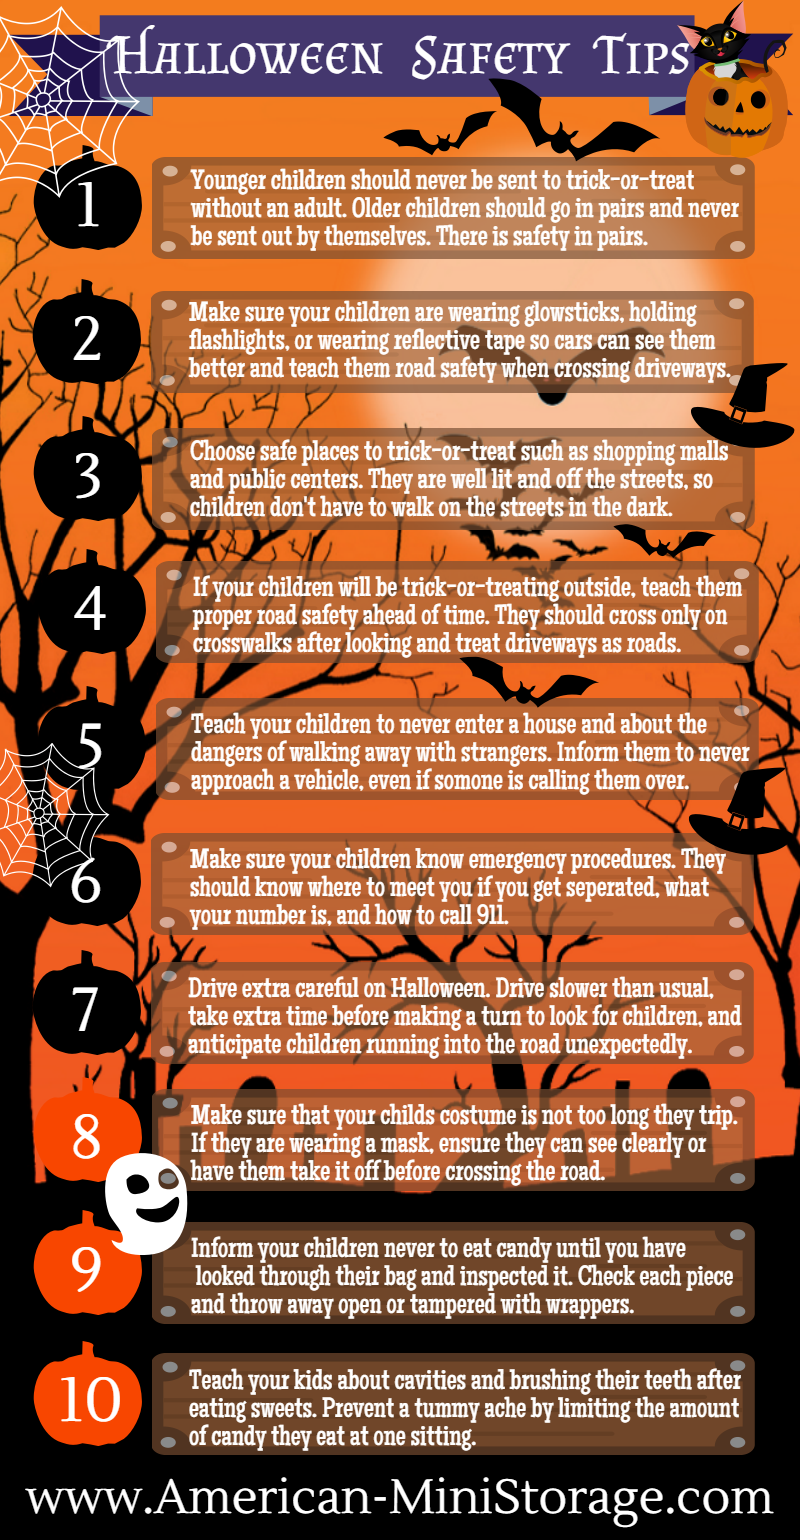 Halloween Safety Tips Infographic Poster Redmond